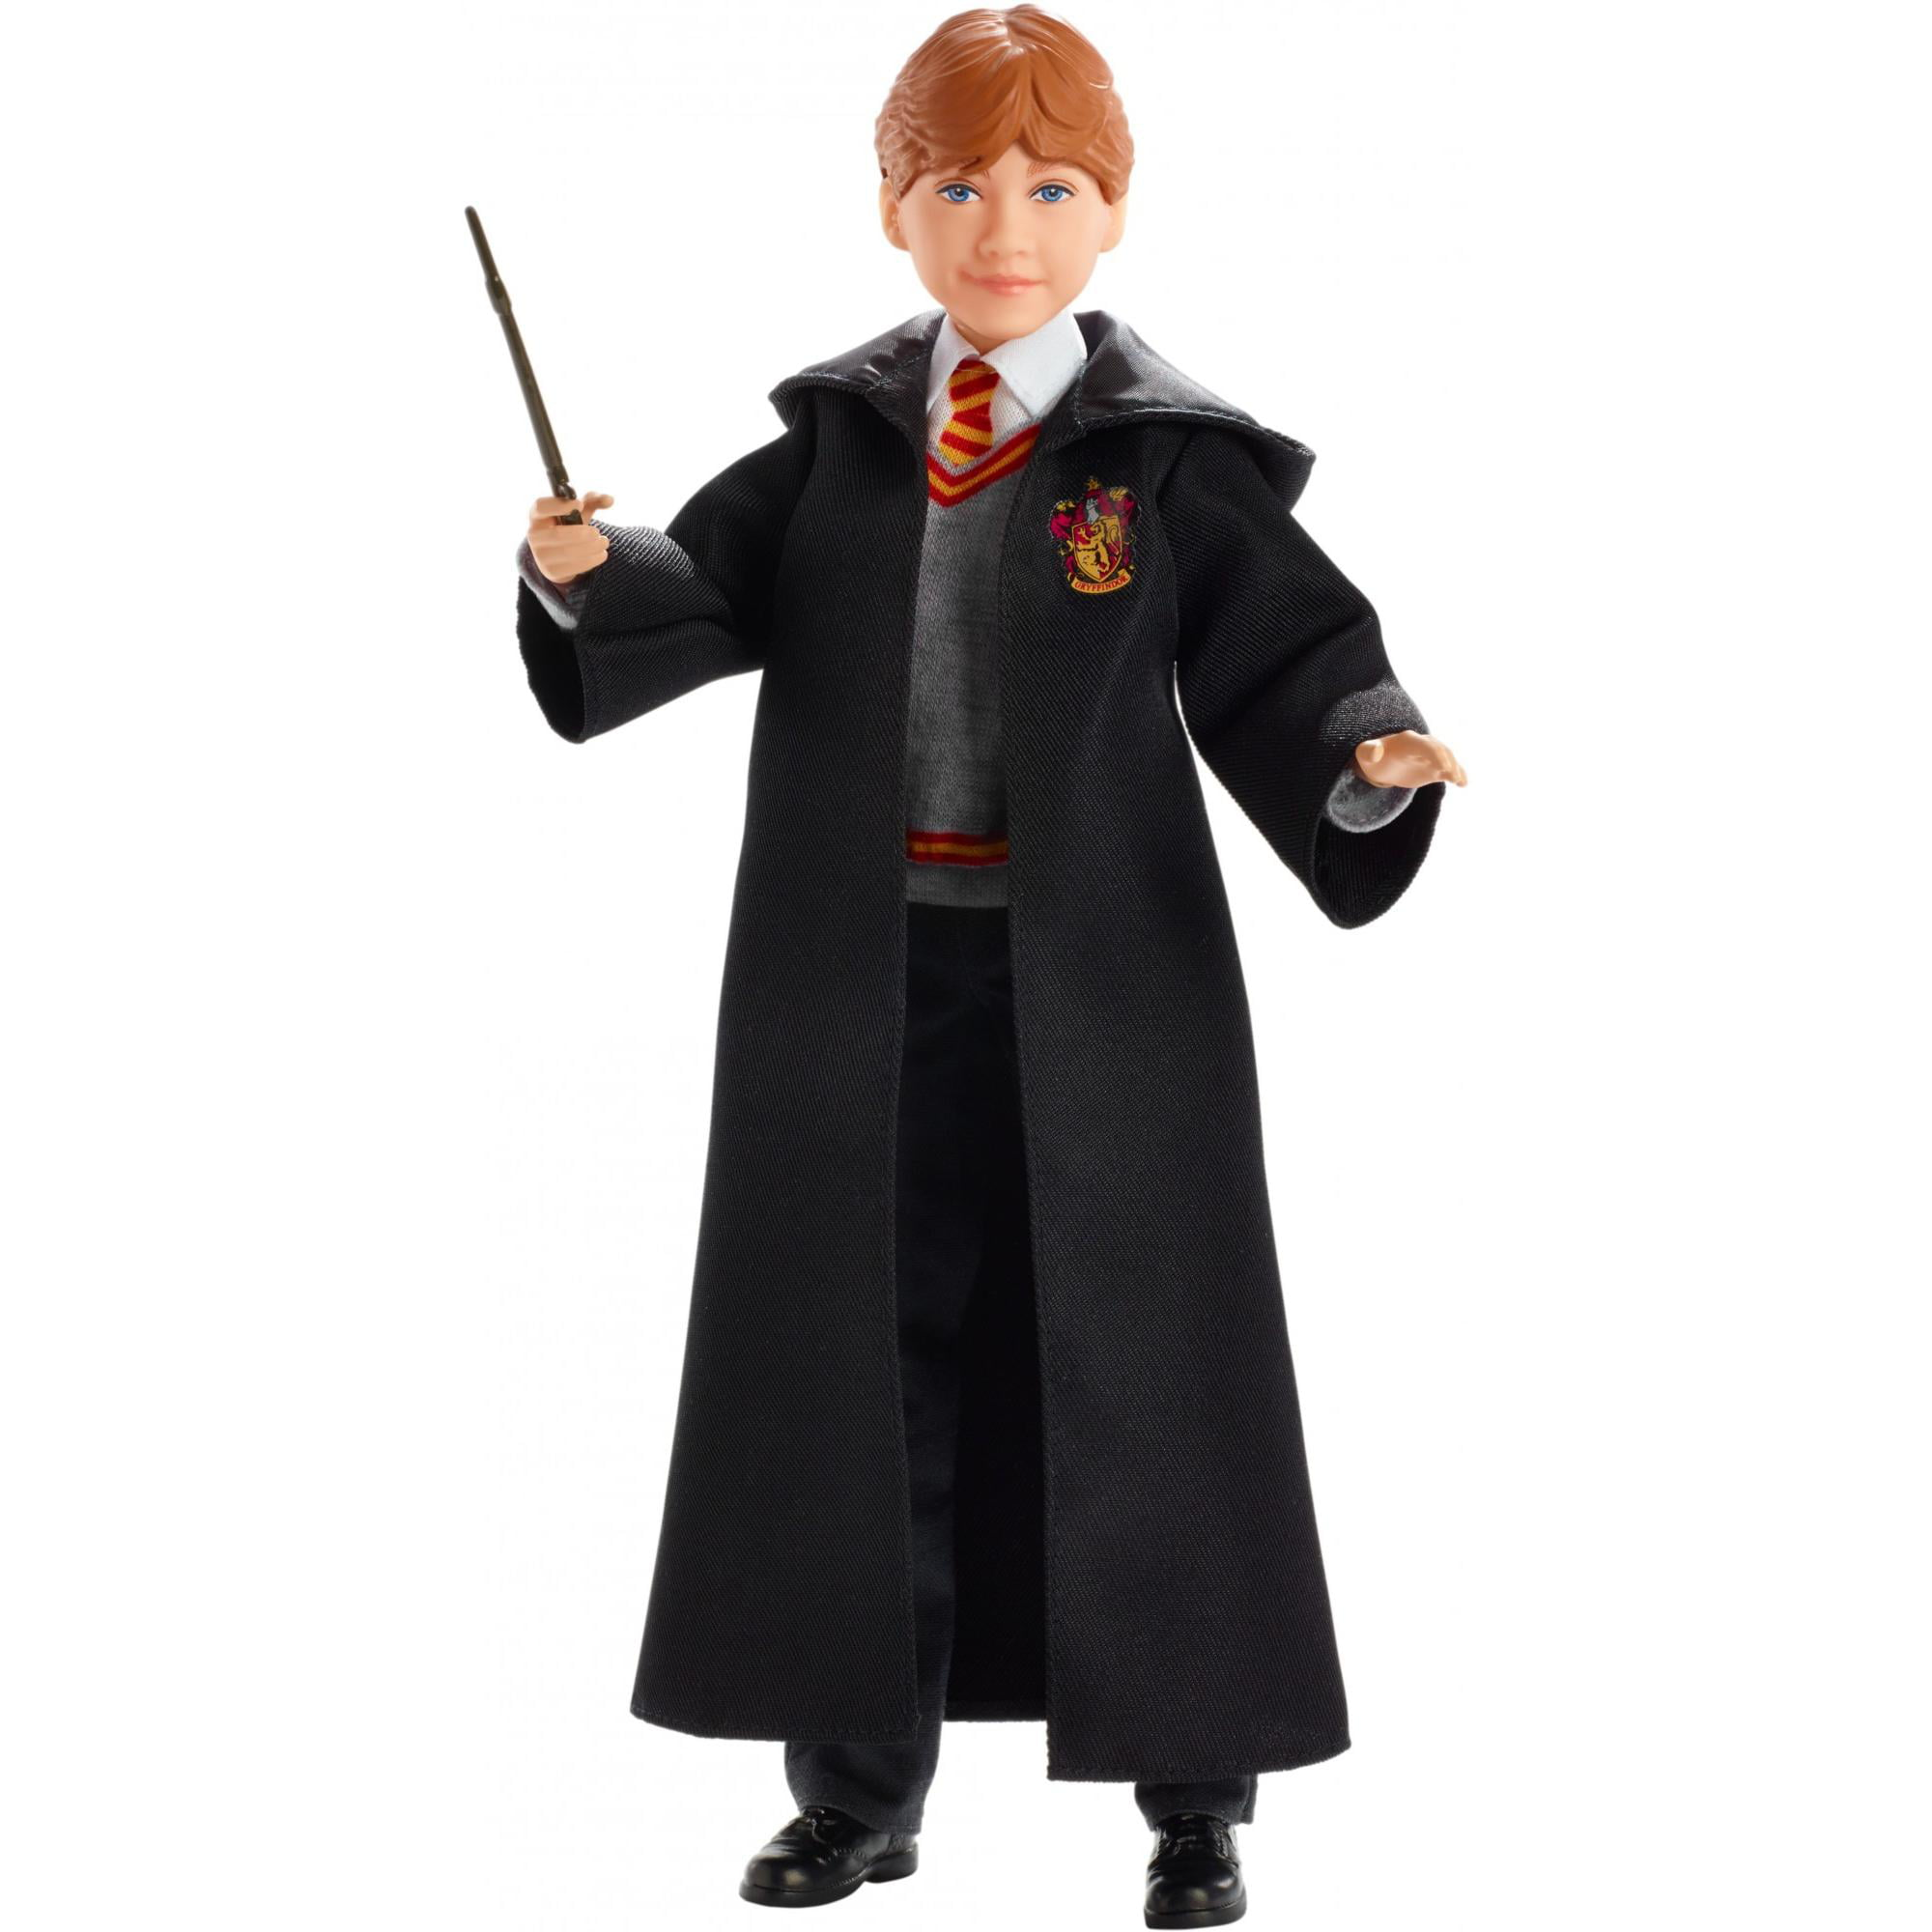 Harry Potter Ron Weasley Film-Inspired Collector Doll by Generic